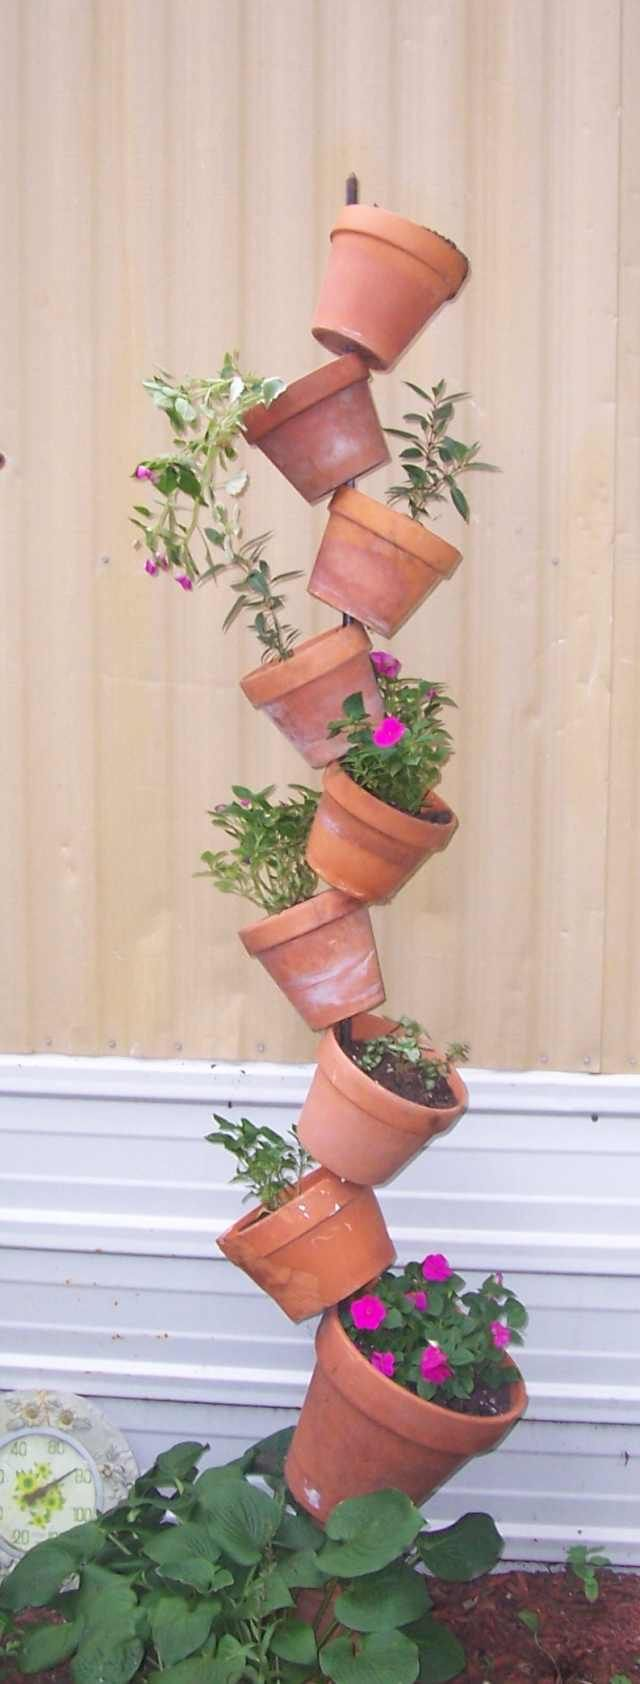 Simple DIY: Use a metal stake to thread the pots, fill with soil and plant! Great idea!